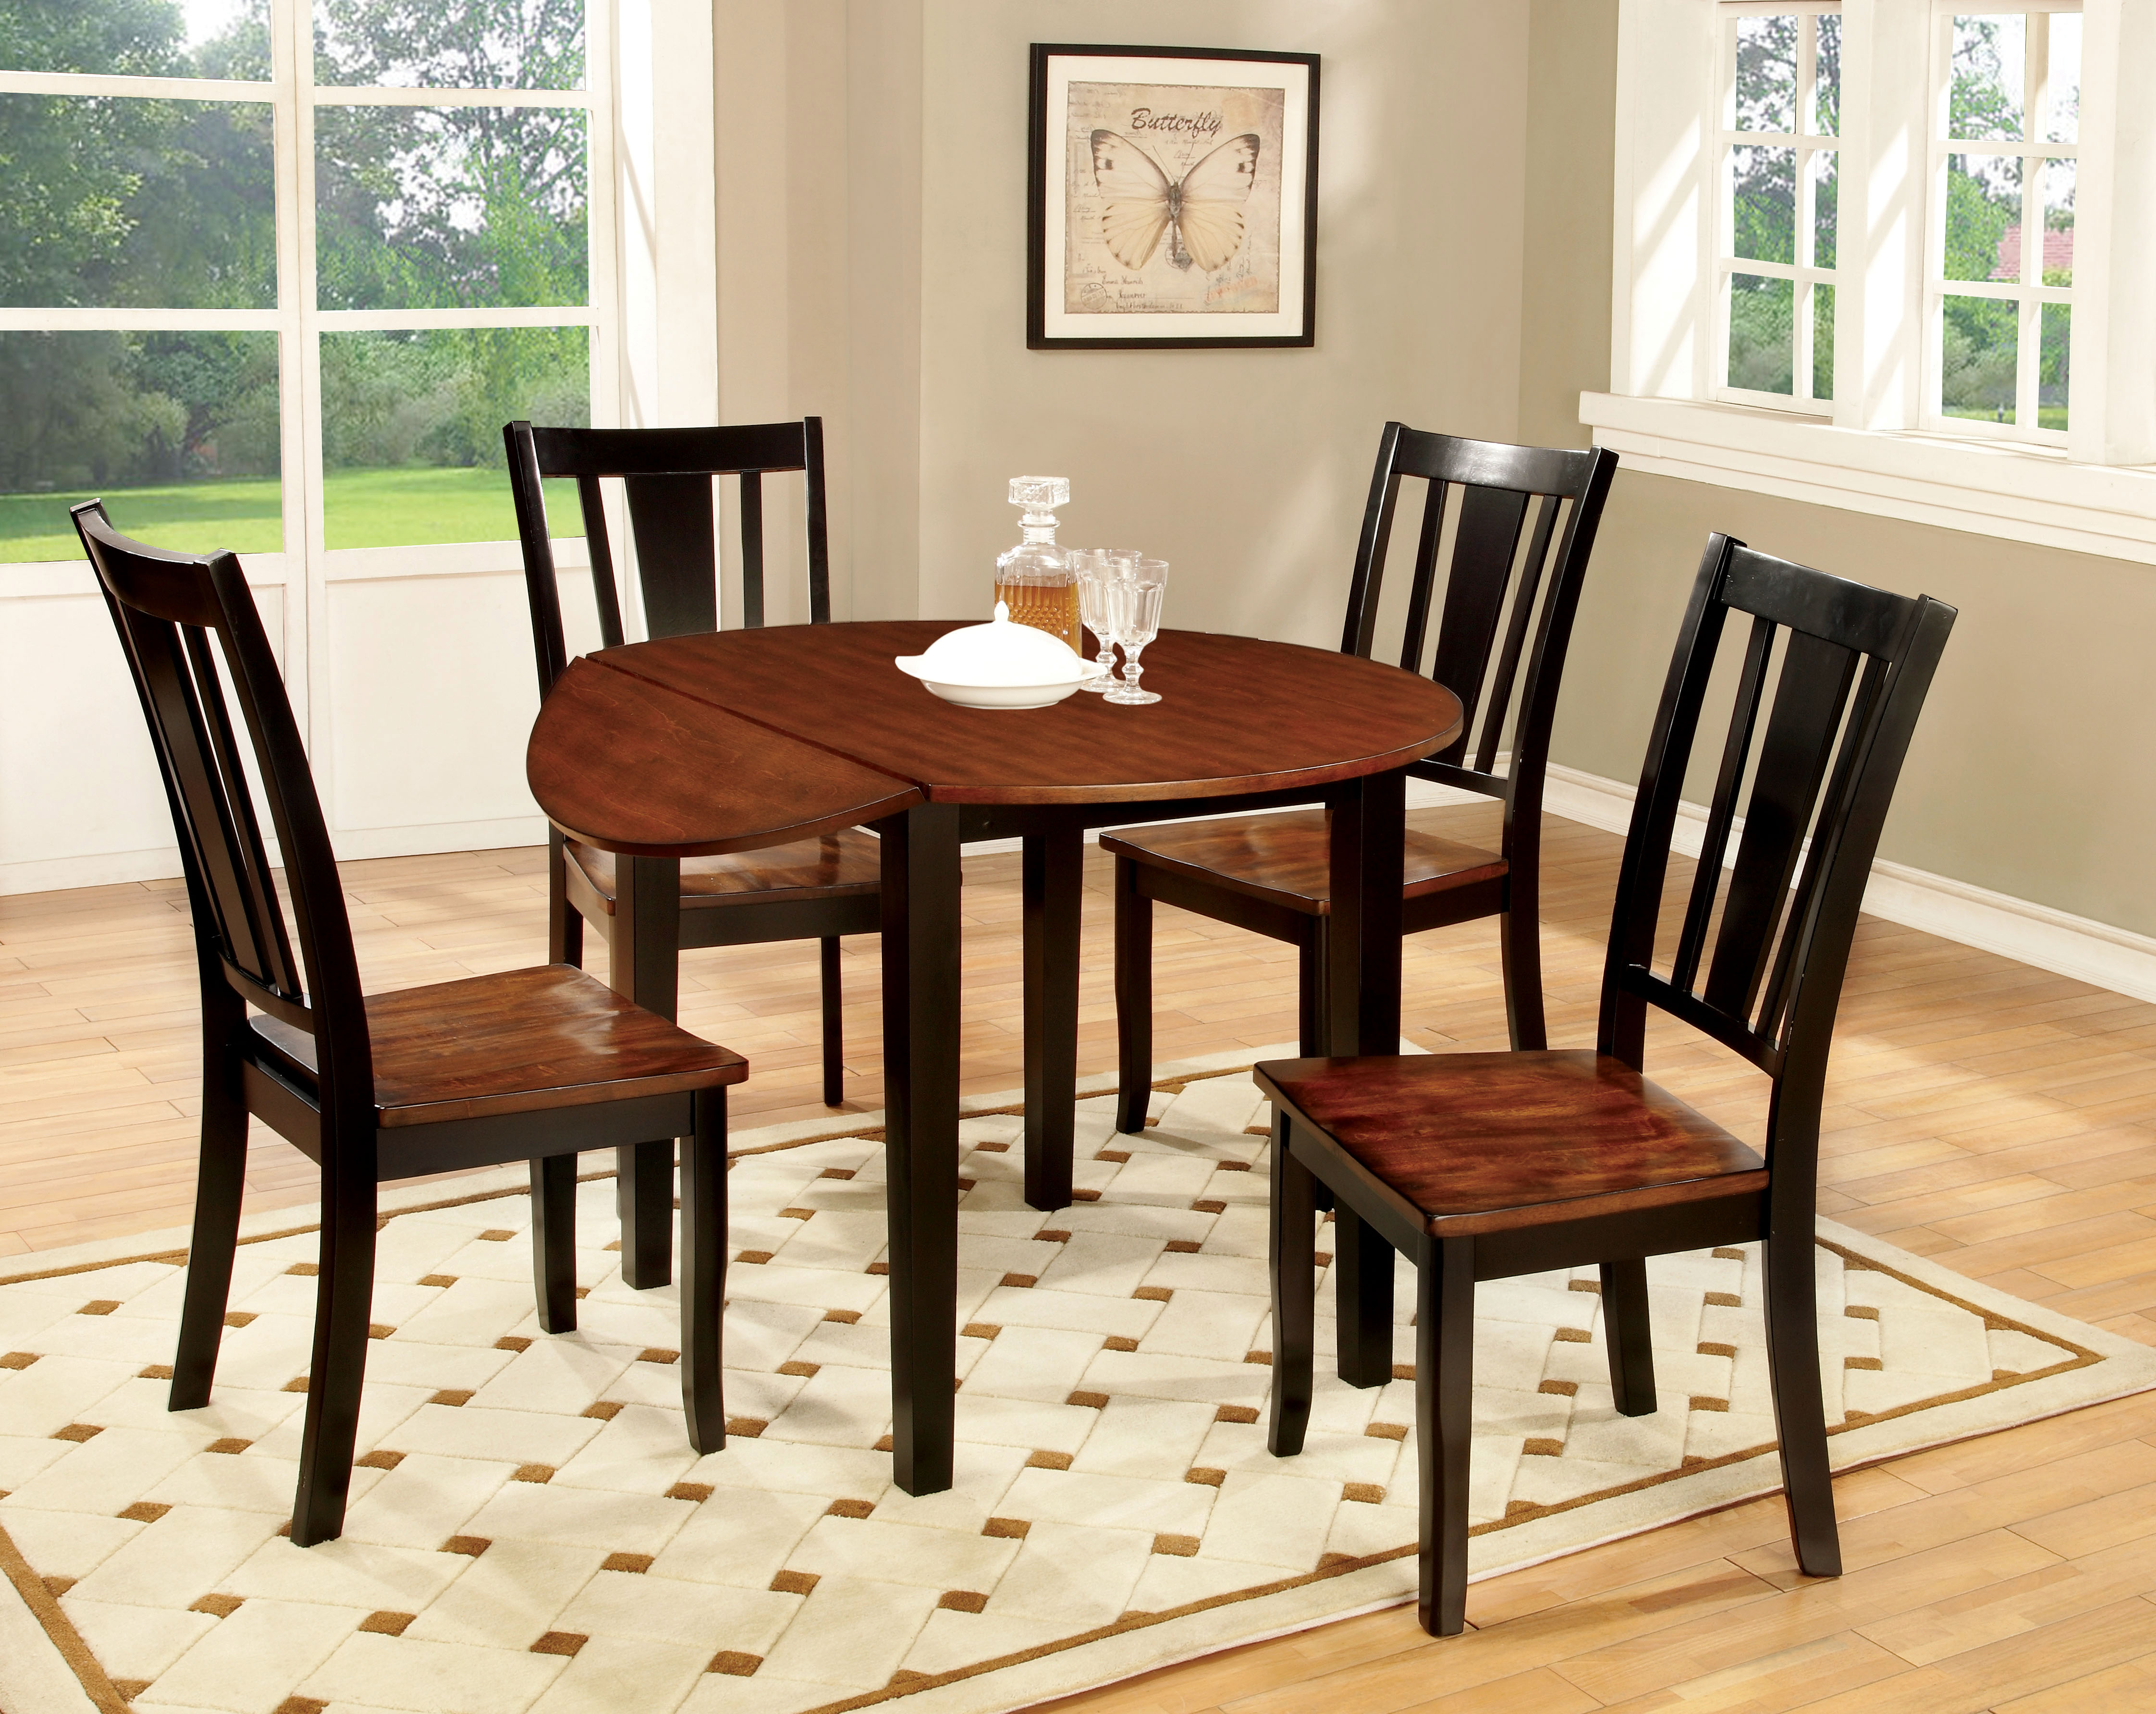 p P two tone kitchen table Furniture of America Two Tone Carmen 5 Piece Round Dining Set Home Furniture Dining Kitchen Furniture Dining Sets Collections